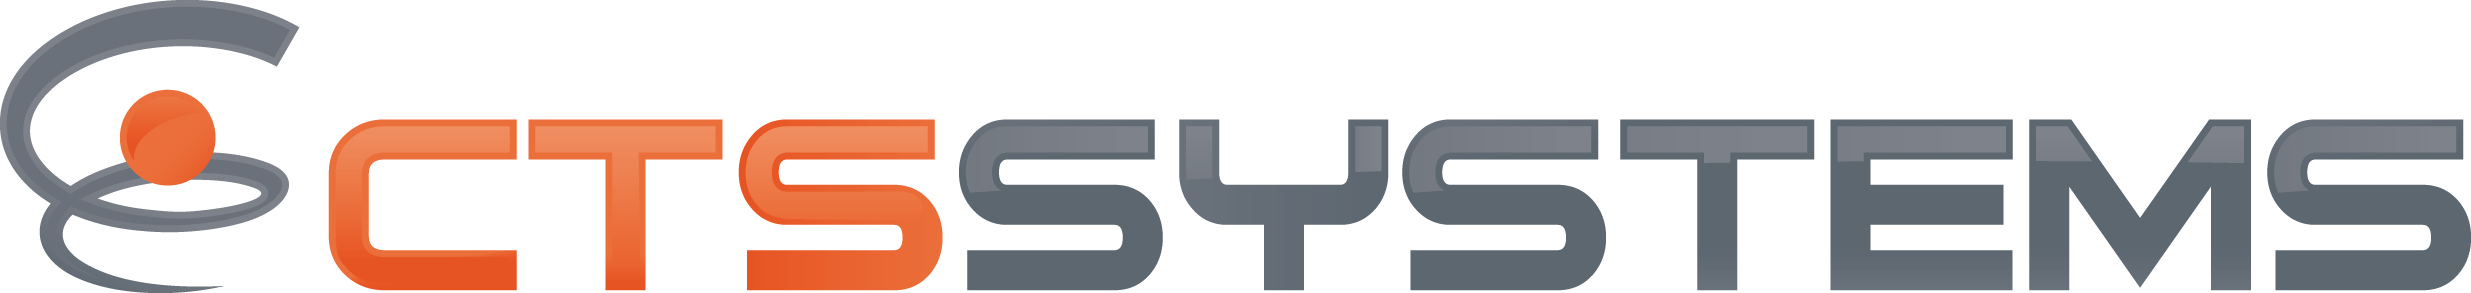 CTS-Logo-2C.png